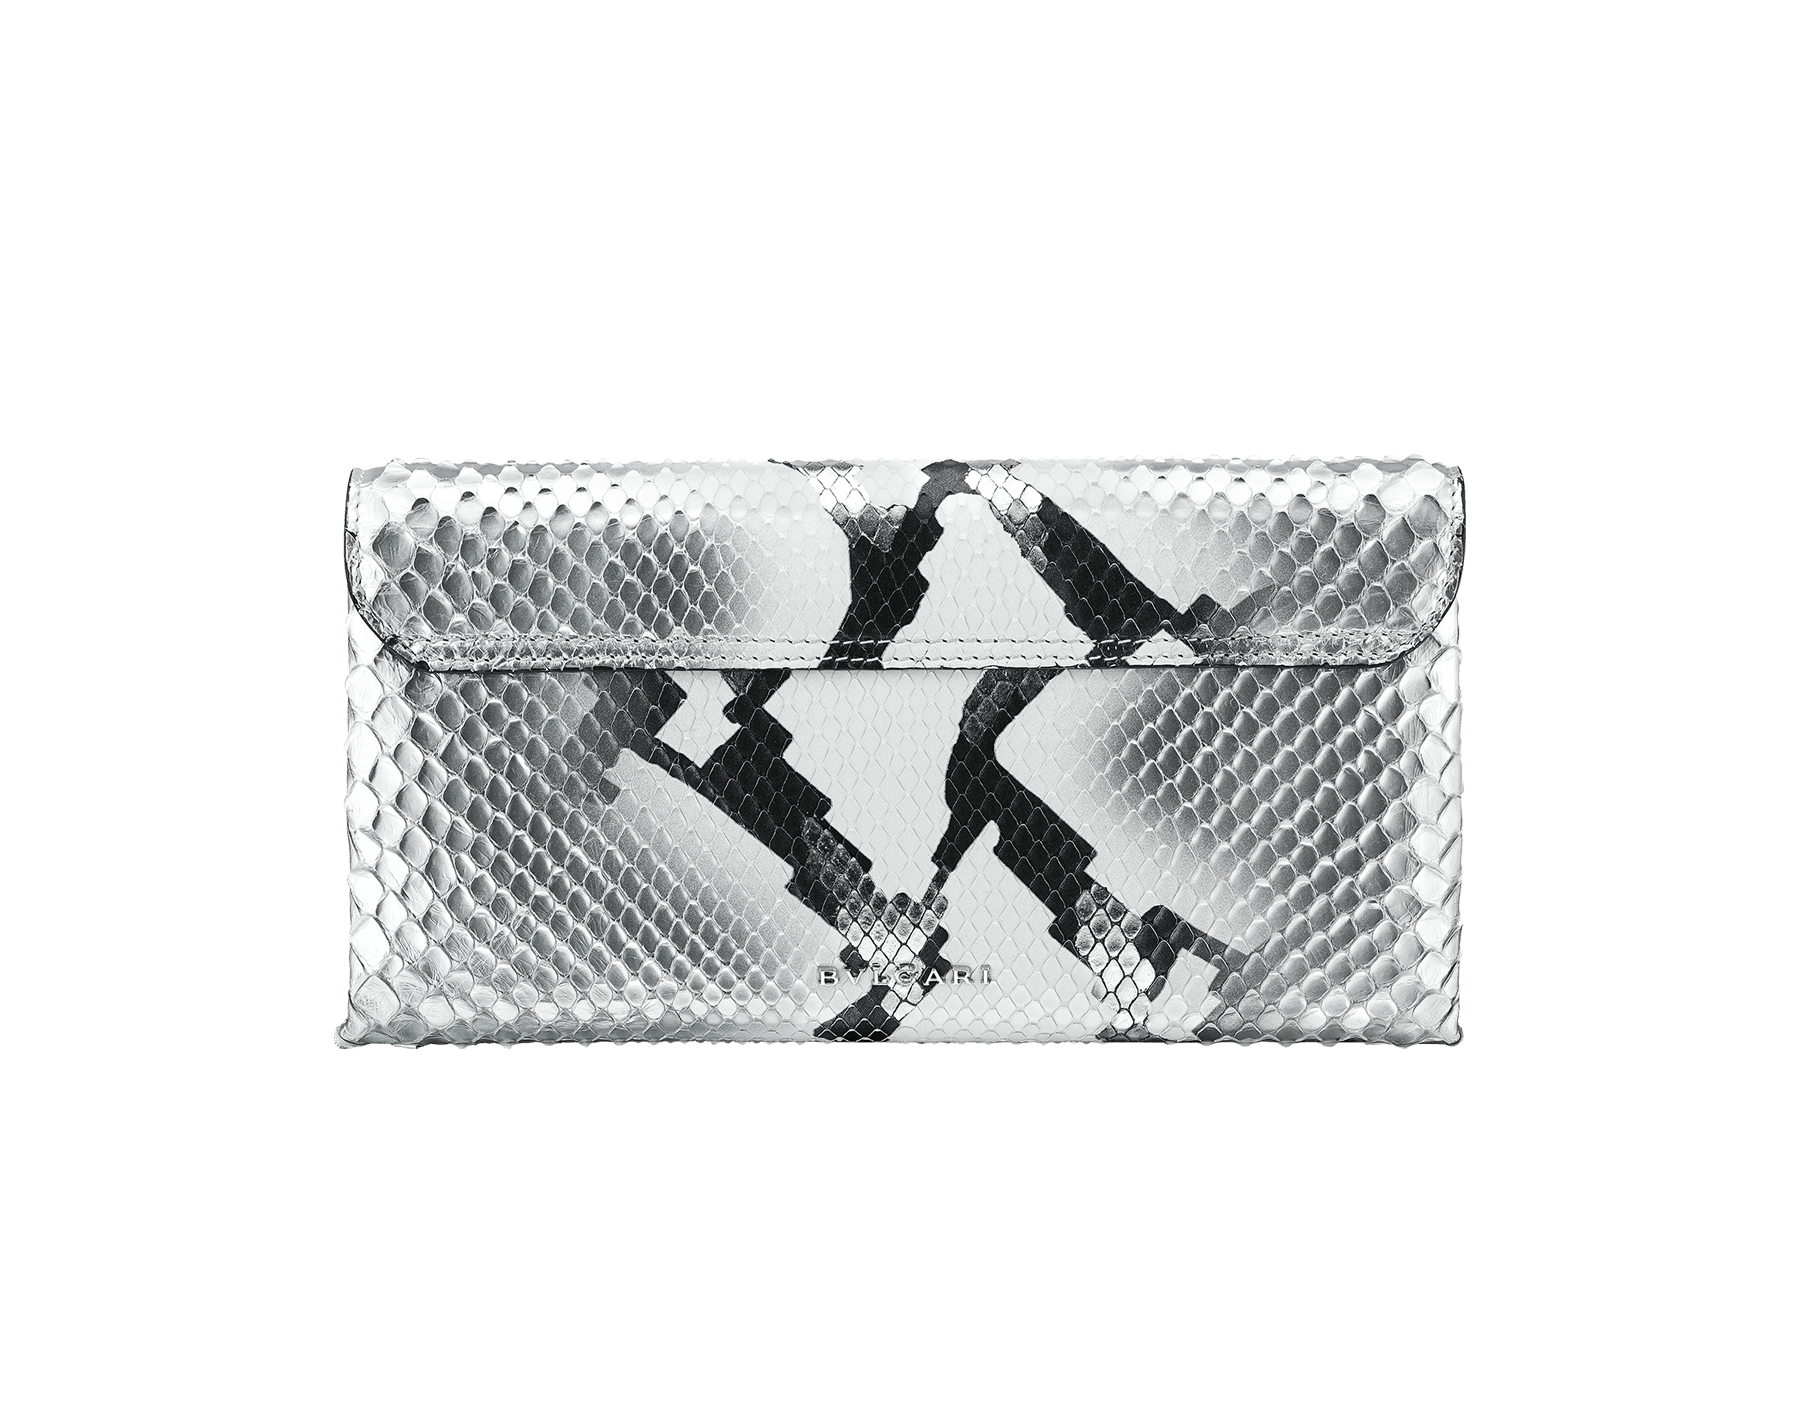 """Serpenti"" evening clutch bag in white and silver Ice Glam python skin. Iconic snake head stud closure with tassel in palladium plated brass enriched with black shiny enamel and black onyx eyes. 288976 image 3"